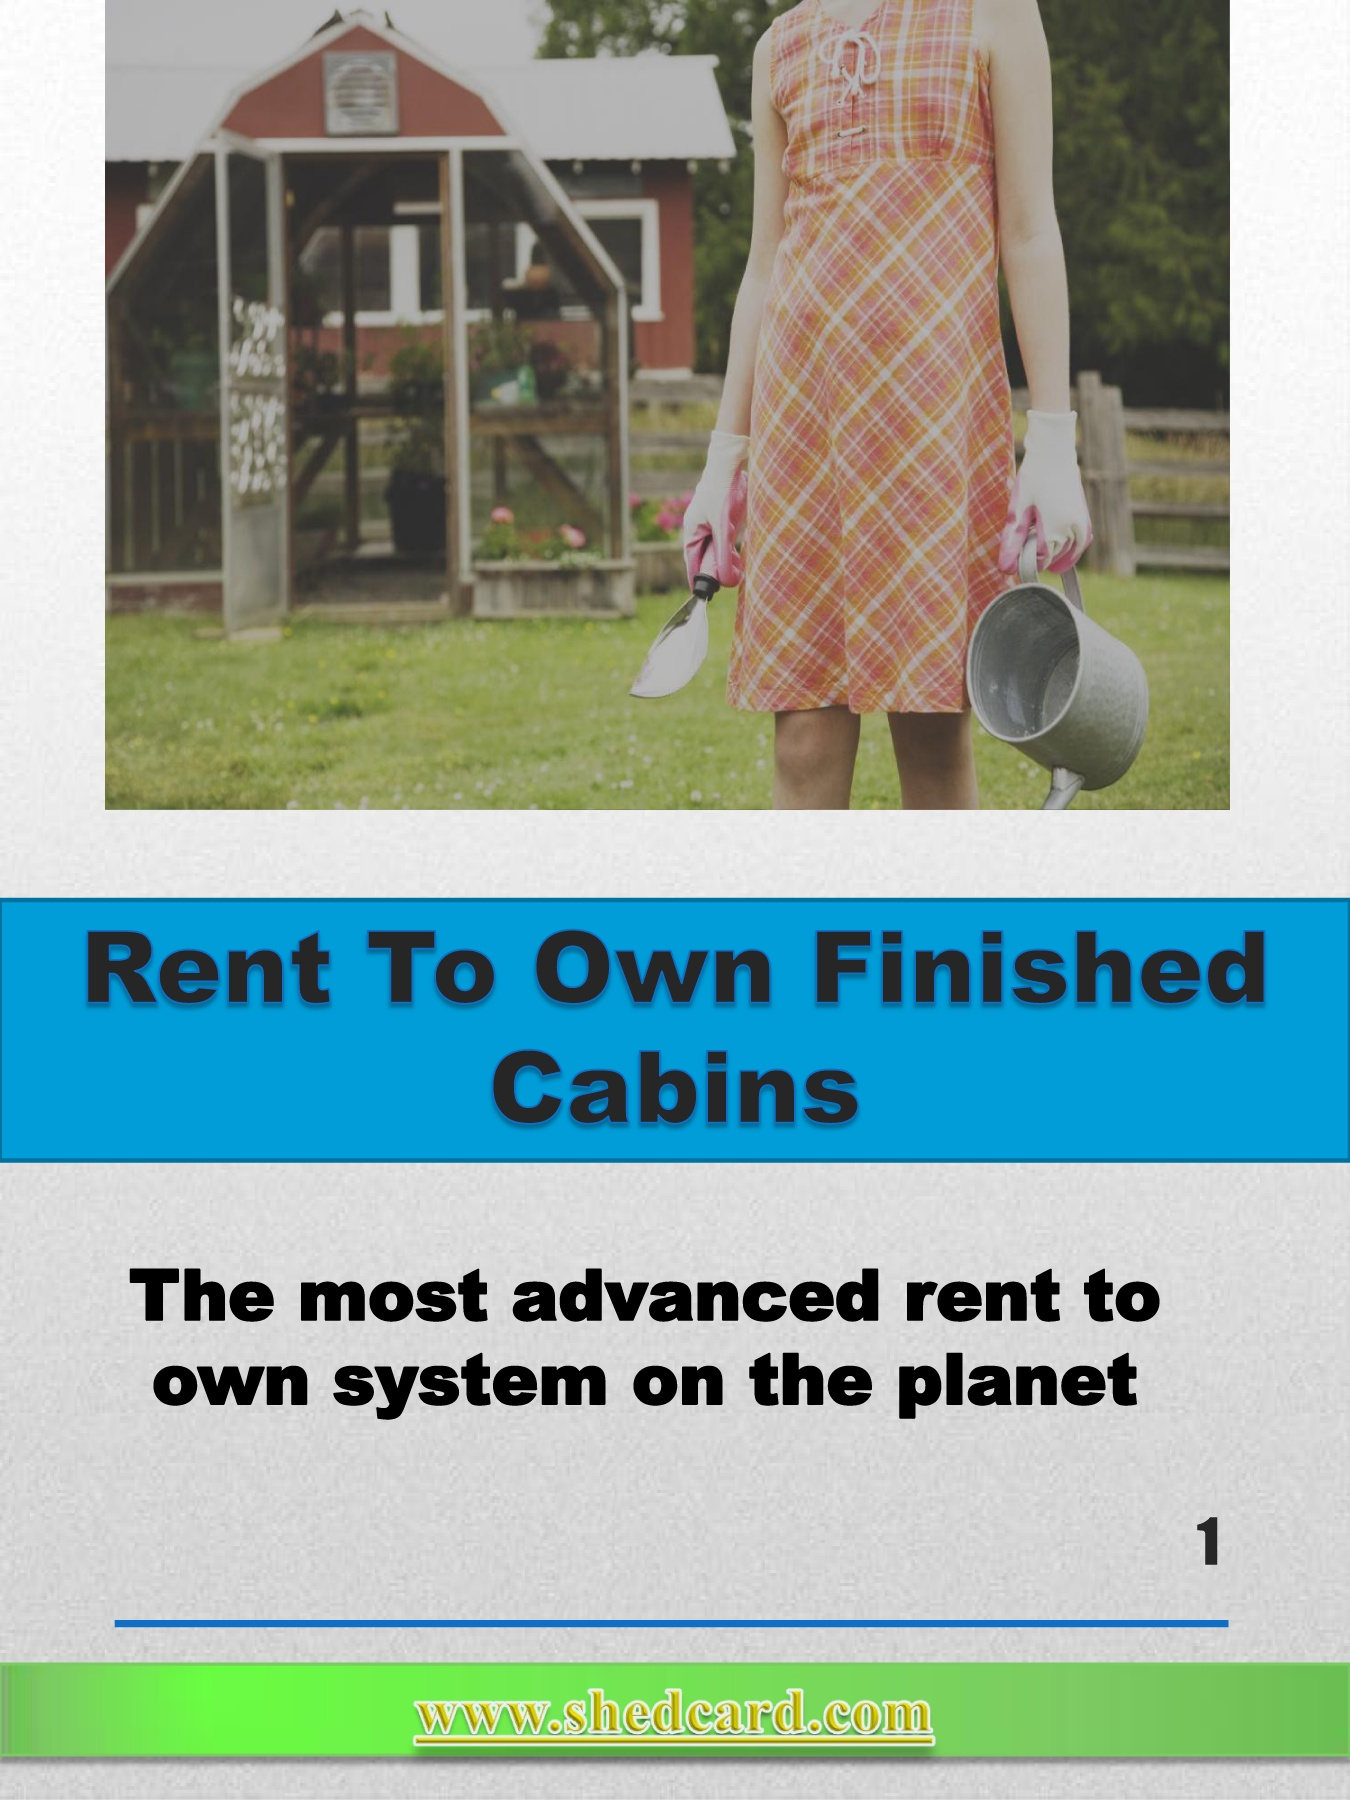 Rent To Own Finished Cabins Pages 1 - 20 - Text Version | AnyFlip